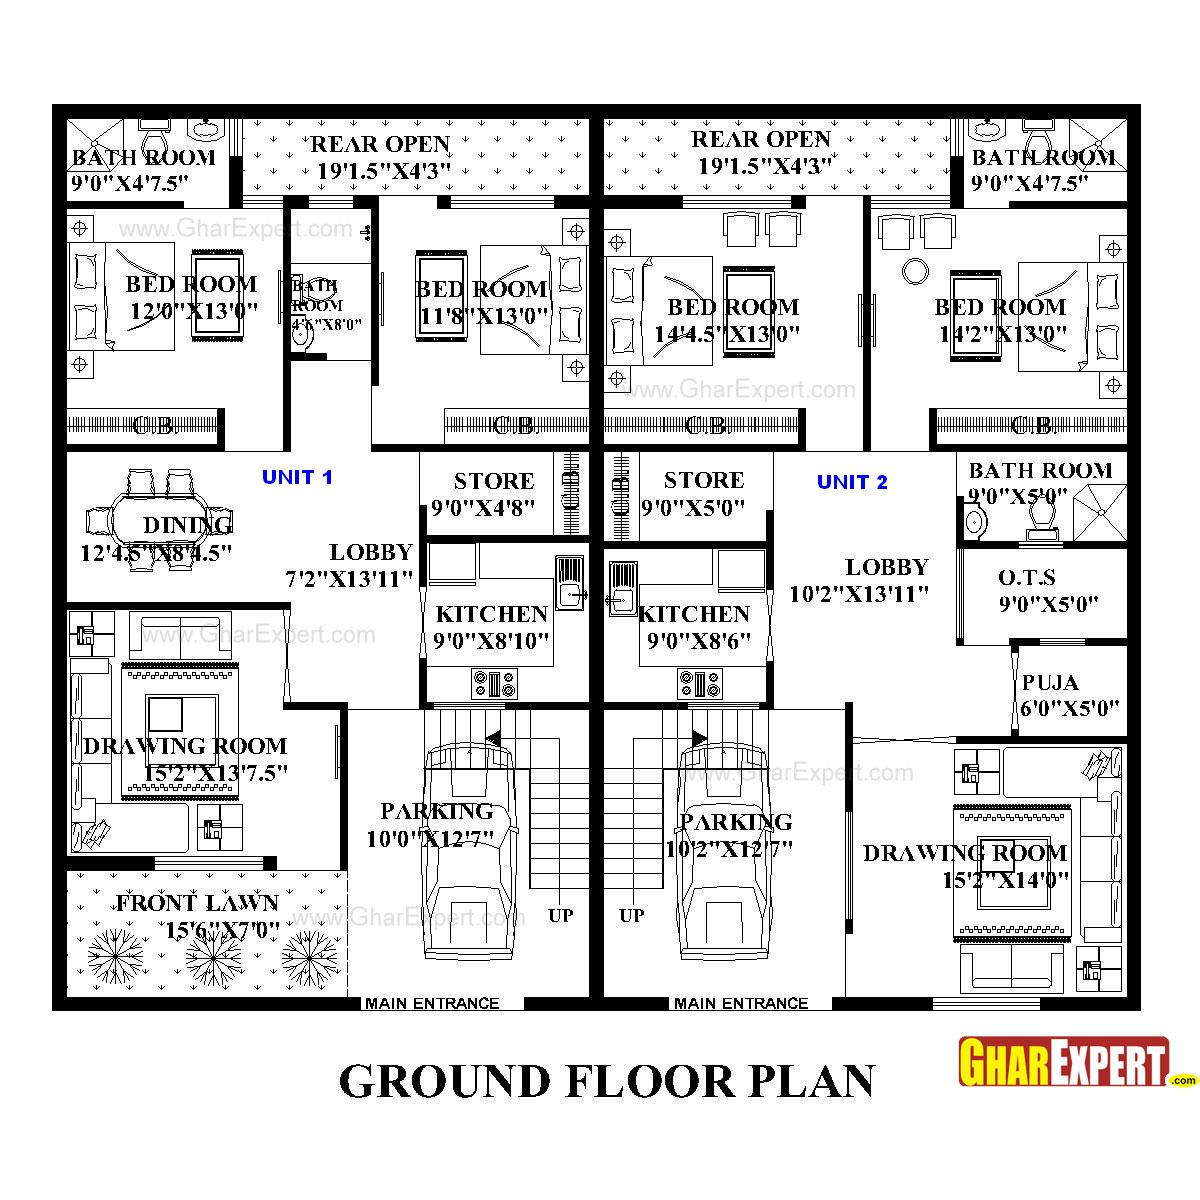 Davis  mons Brockton besides Floor Plan Area Calculator further 500 Square Feet House Plans 600 Sq Ft Apartment Floor Plan 500 For Inside 300 Square Foot House further Shoe Mogul Steve Madden Lists Townhouse together with The Heights At Evansville Manor Floor Plans 2. on 400 square foot room